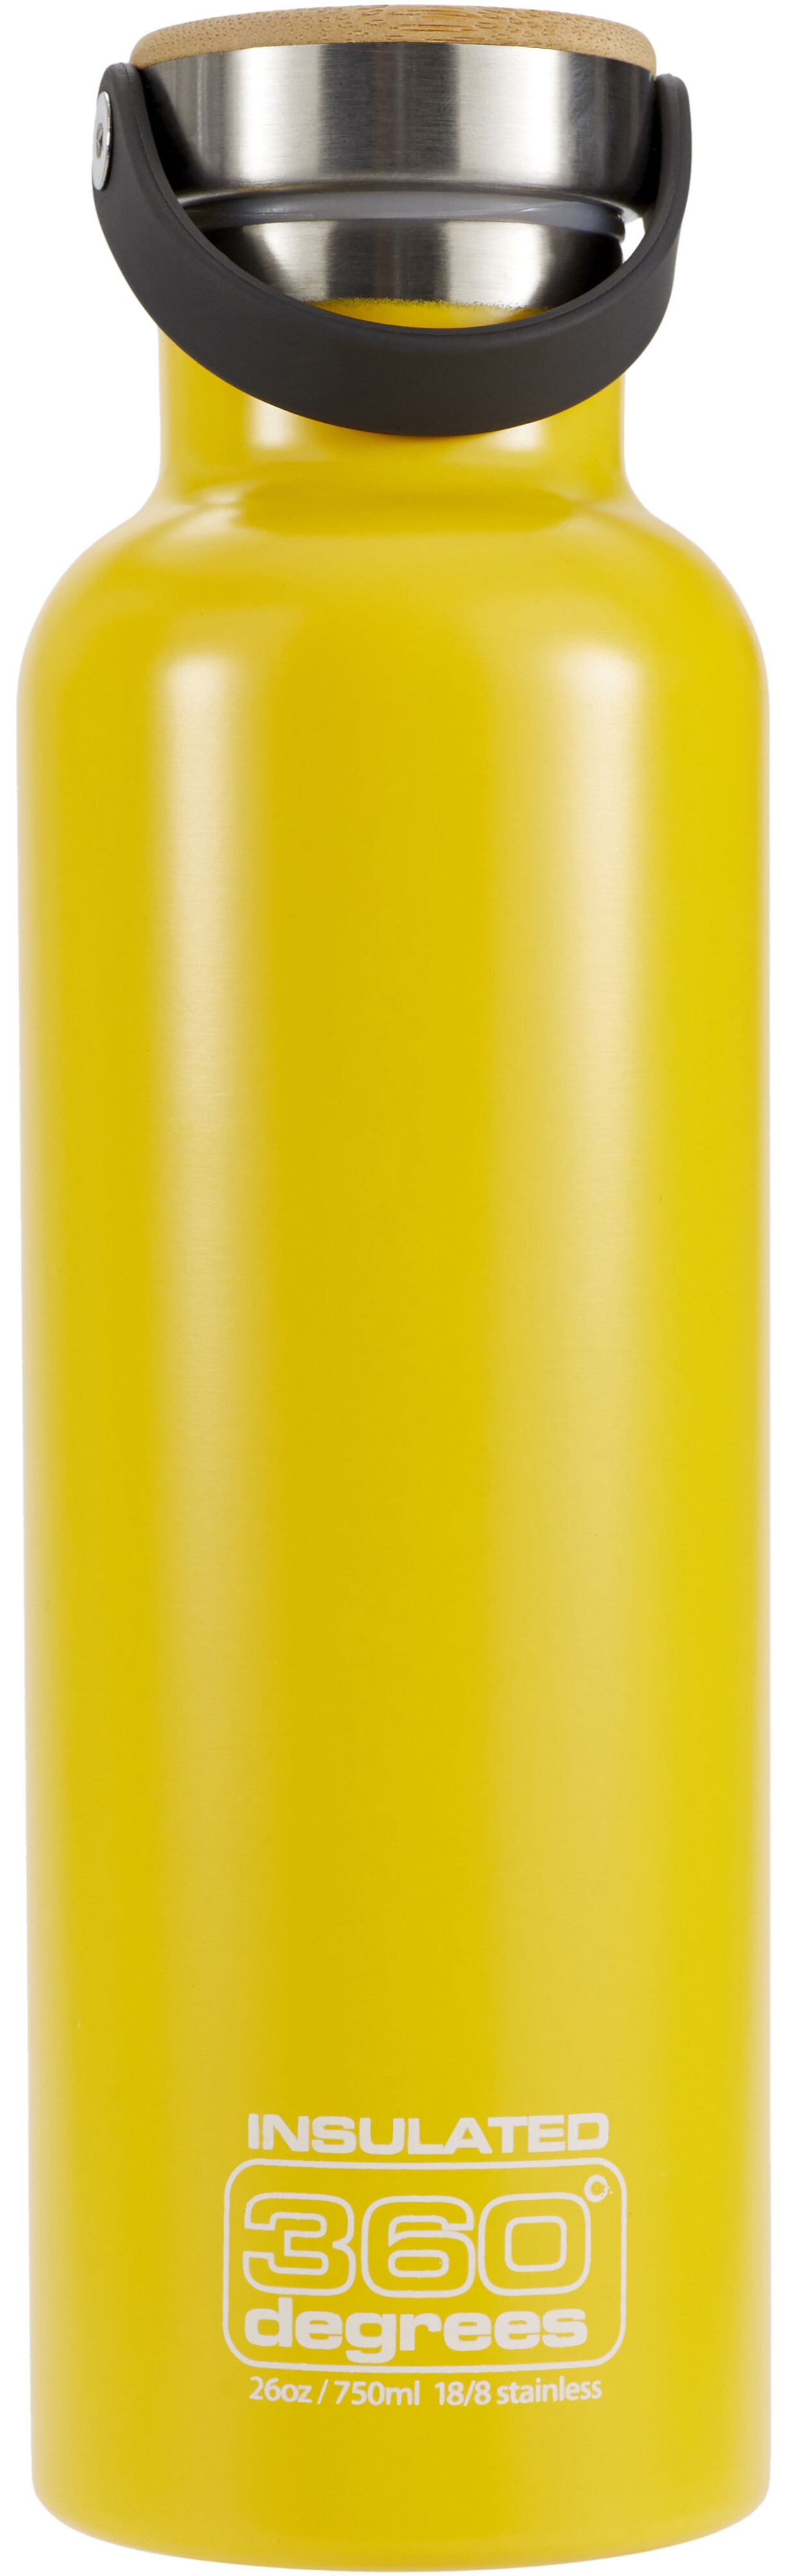 360 degrees vacuum insulated drink bottle 750ml yellow. Black Bedroom Furniture Sets. Home Design Ideas